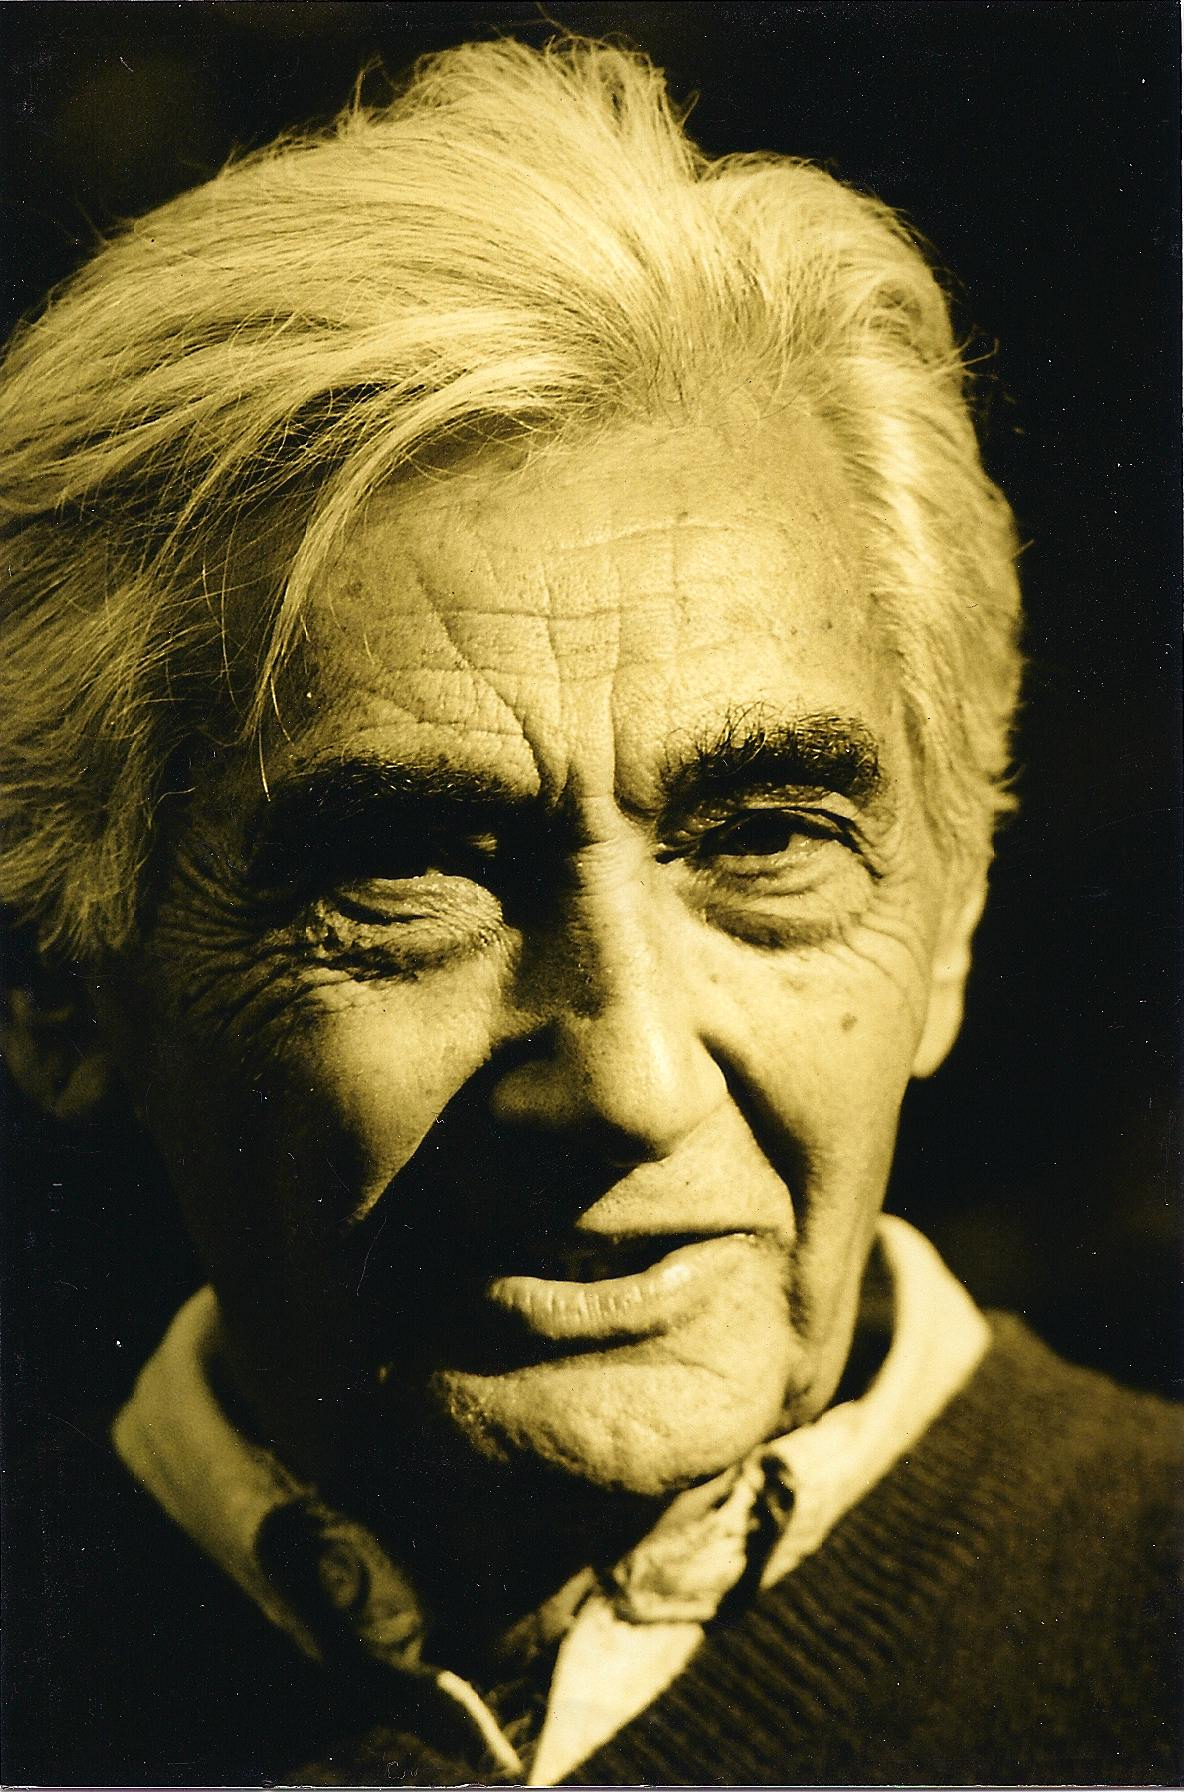 howard zinn essays From the bestselling author of a people's history of the united states comes this  selection of passionate, honest, and piercing essays looking at american po.